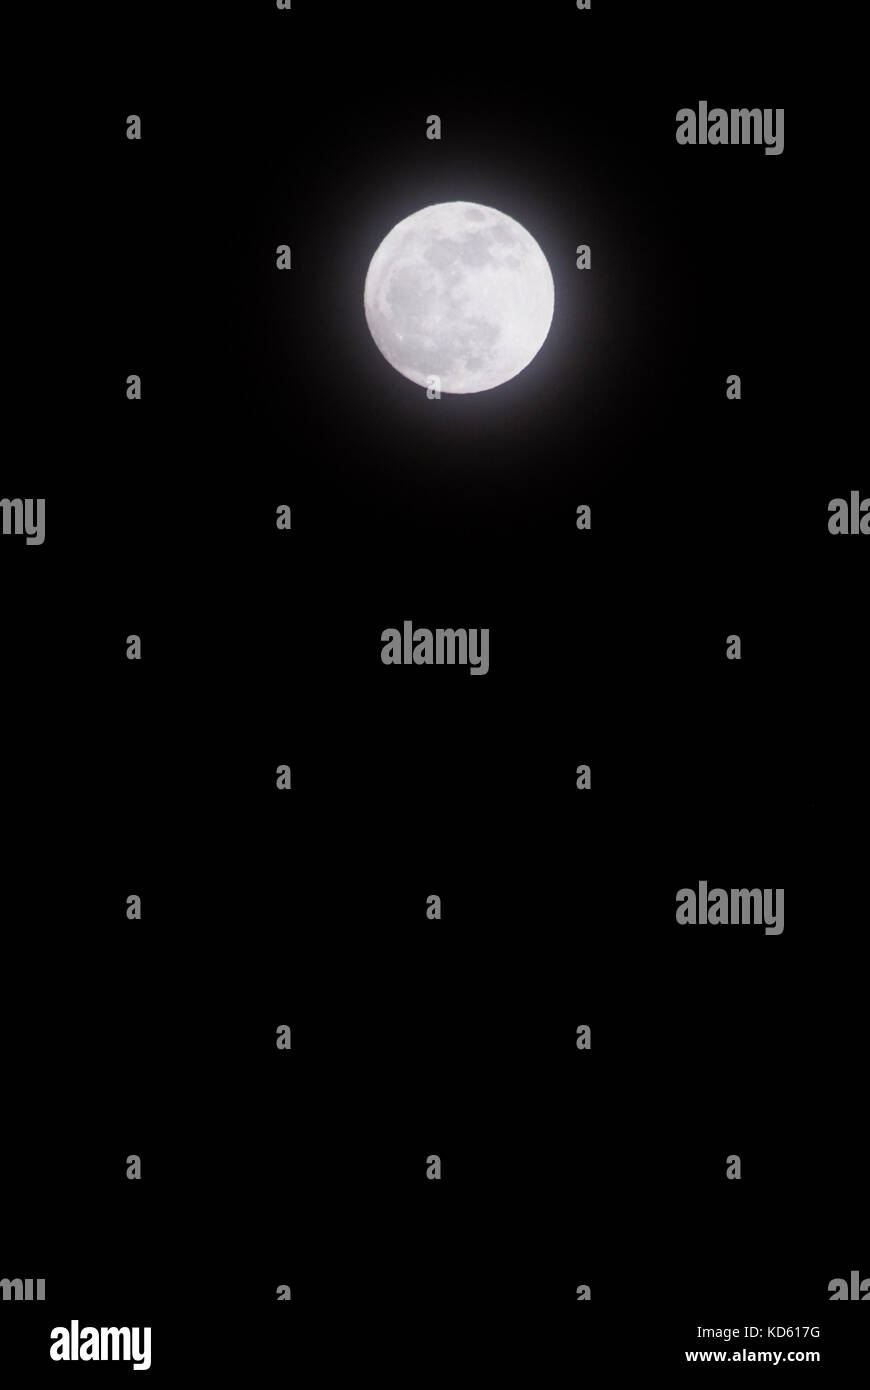 Full Moon and a Black Sky. A full moon shines in a totally dark sky at night. - Stock Image